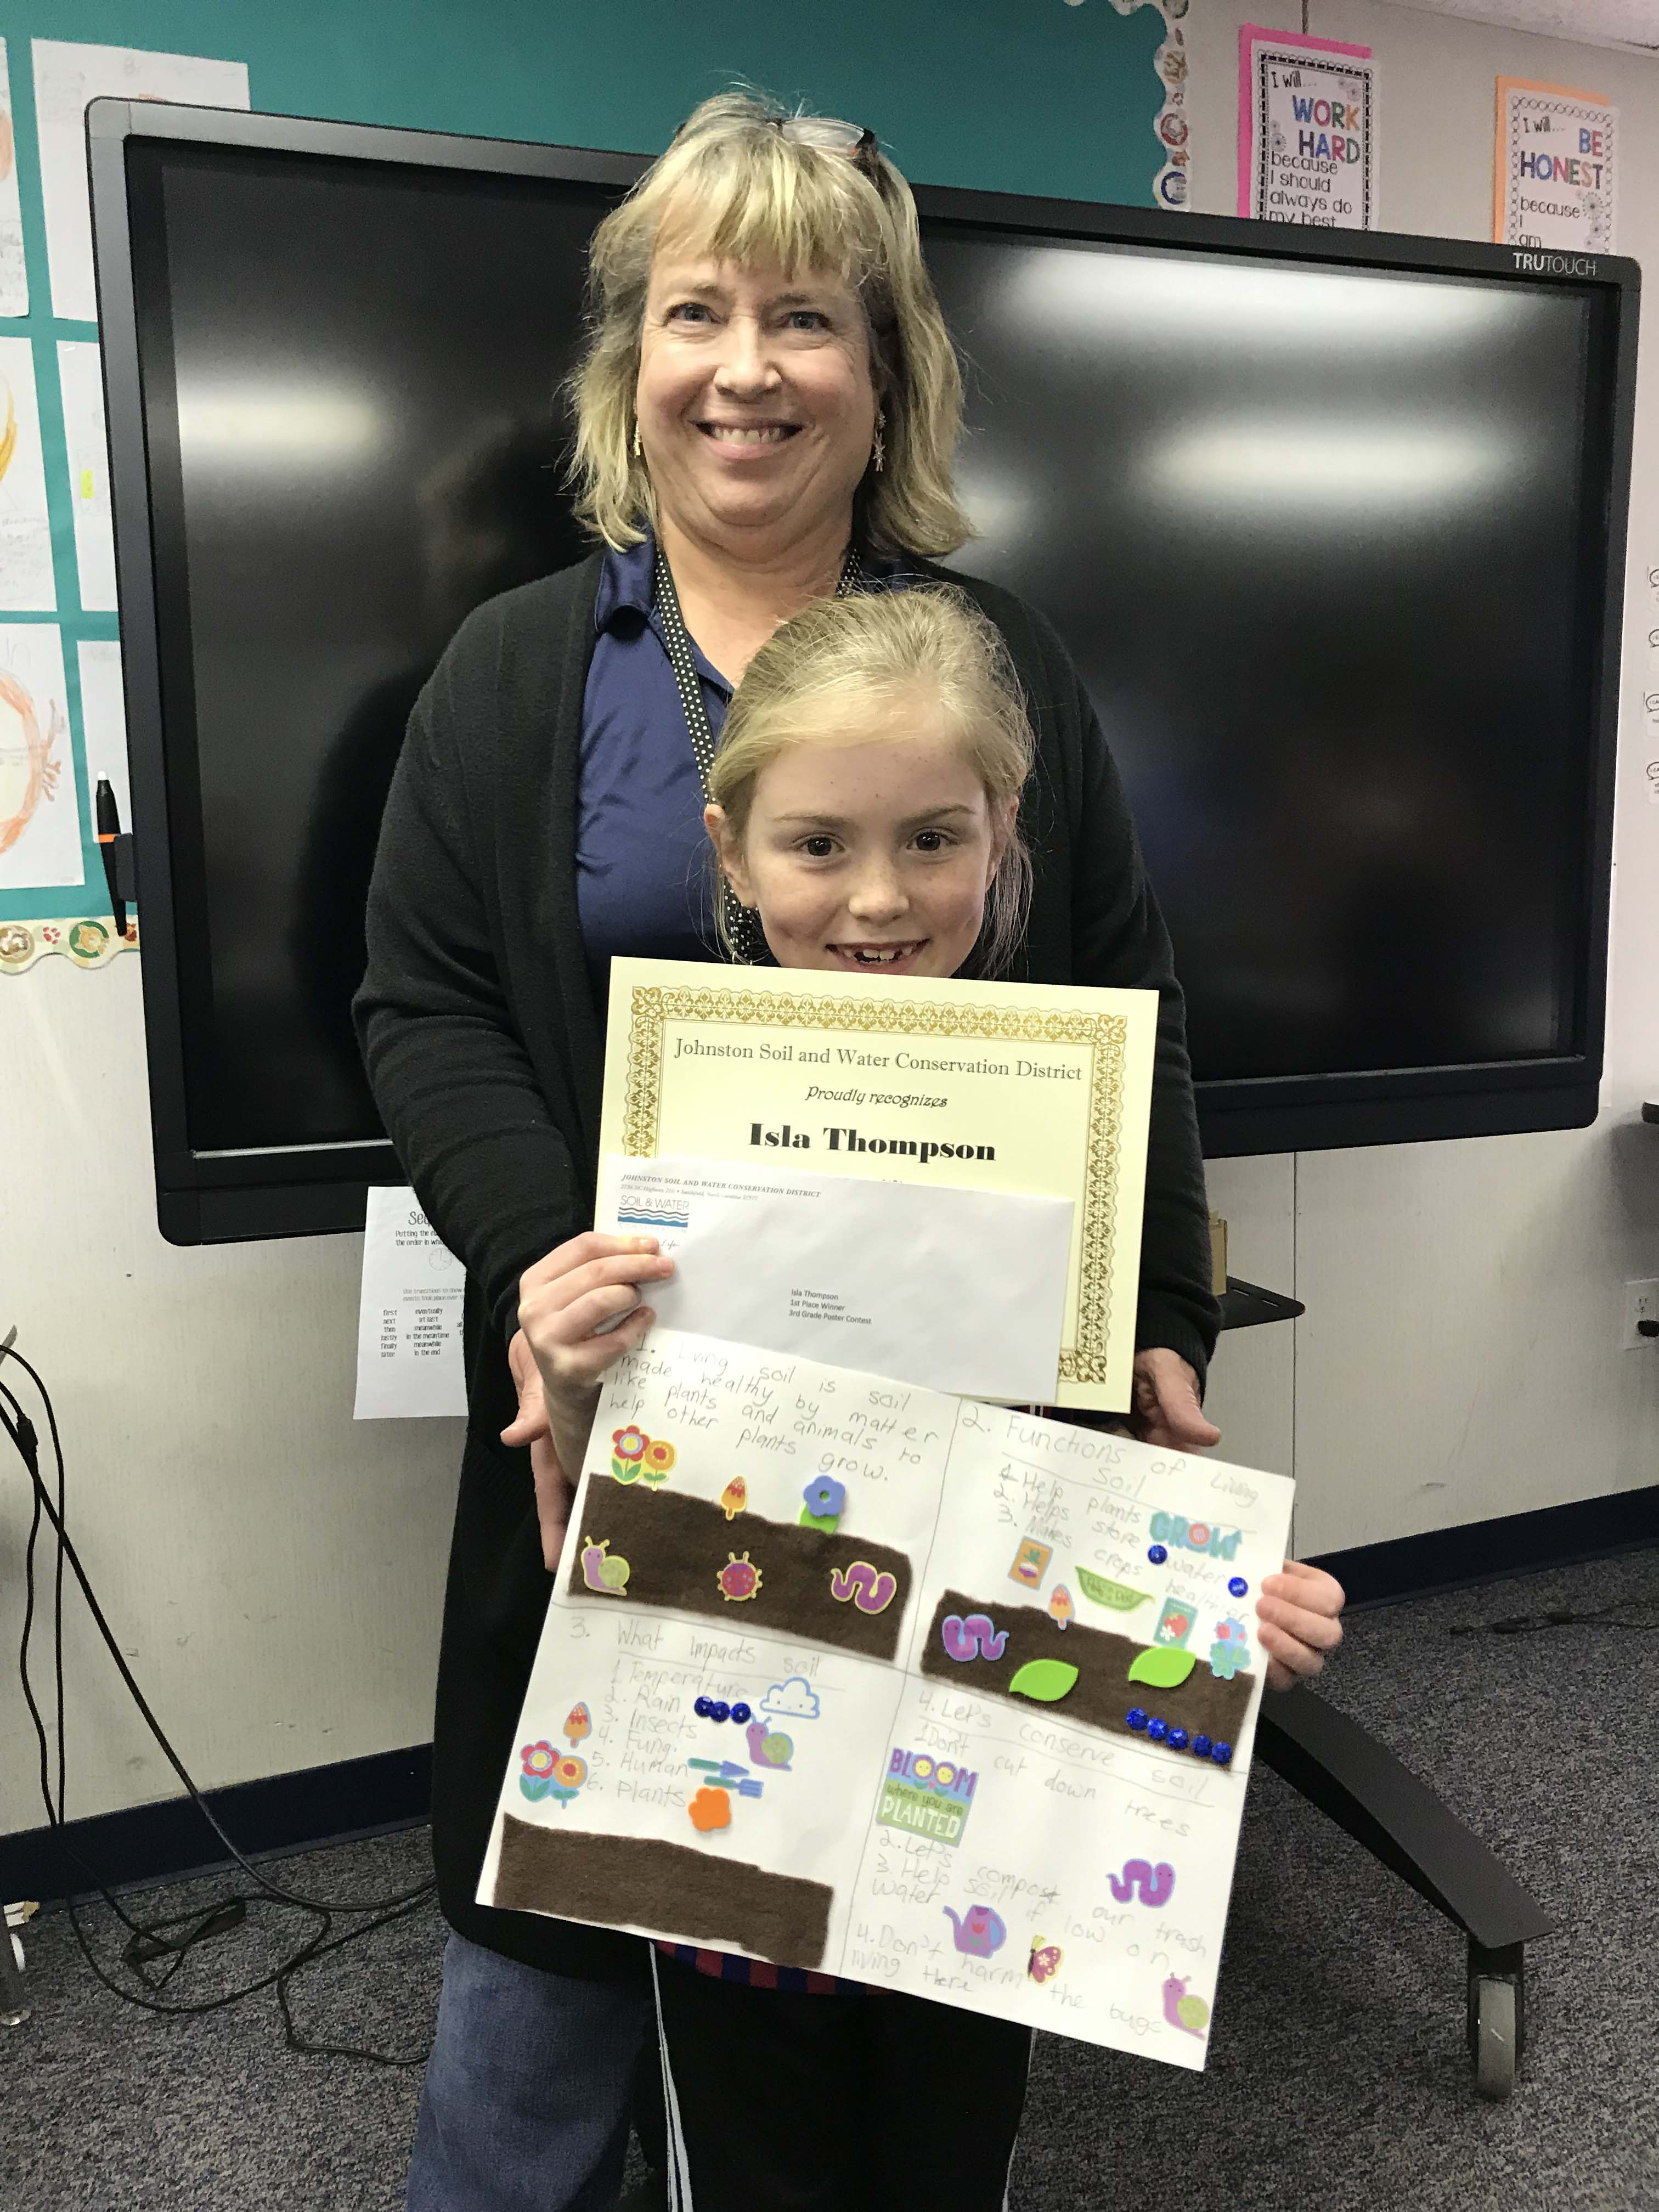 2018 / 2019 1st place Poster Contest Winner Isla (Eye-La) Thompson 3rd grade student at River Dell Elementary and her teacher, Ms. Warren